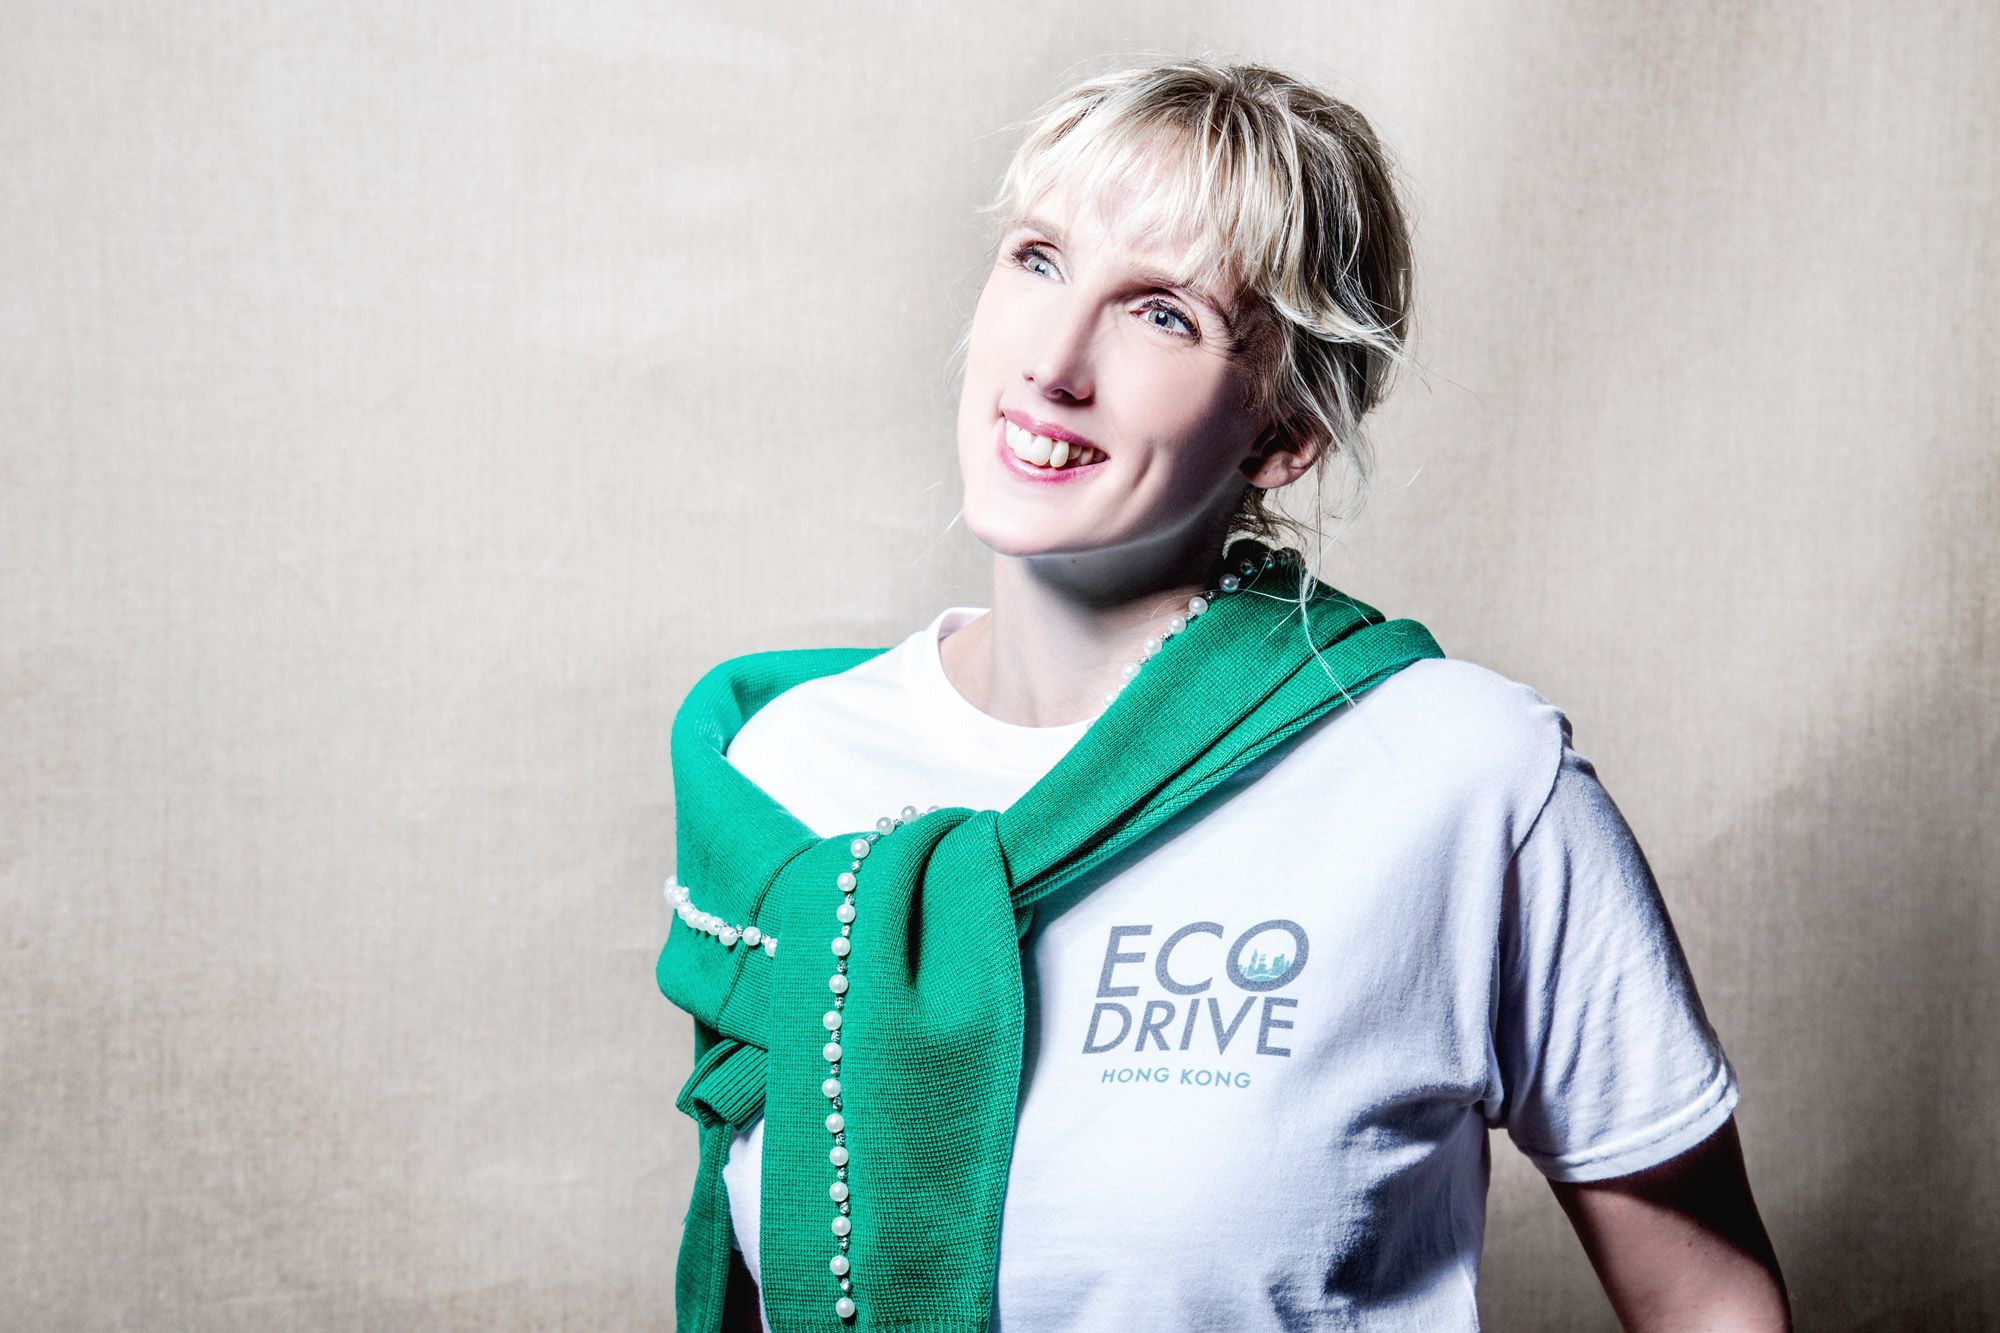 Eco Warriors: Laura Derry Southwood Of EcoDrive Hong Kong